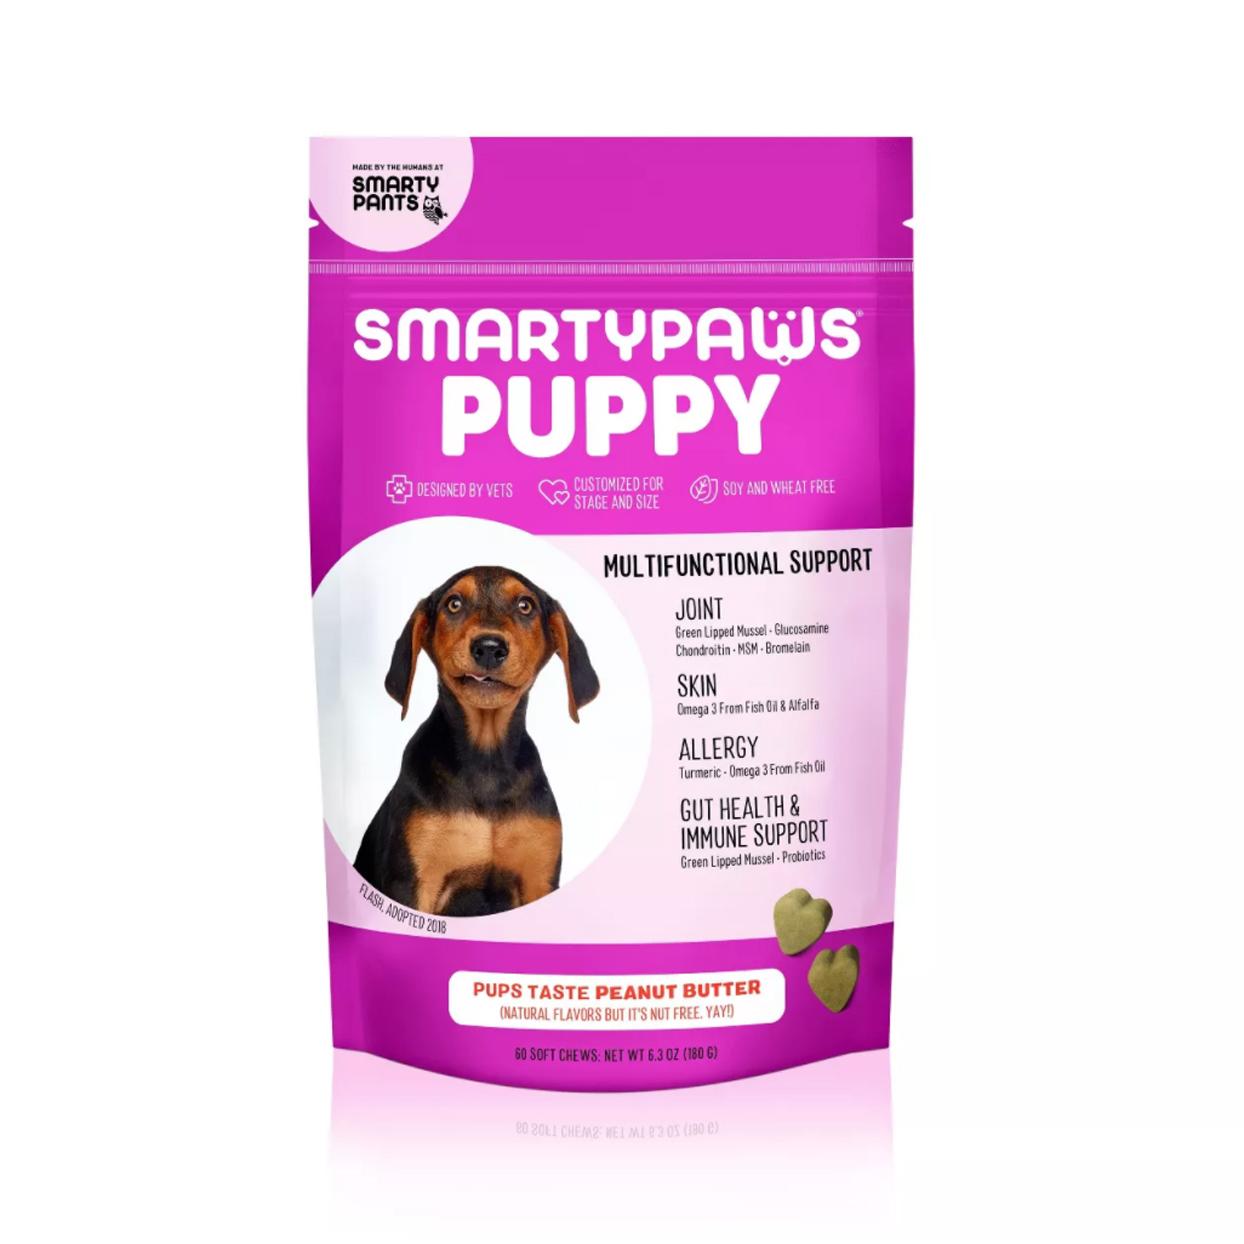 smartypaws-puppy-dog-supplements